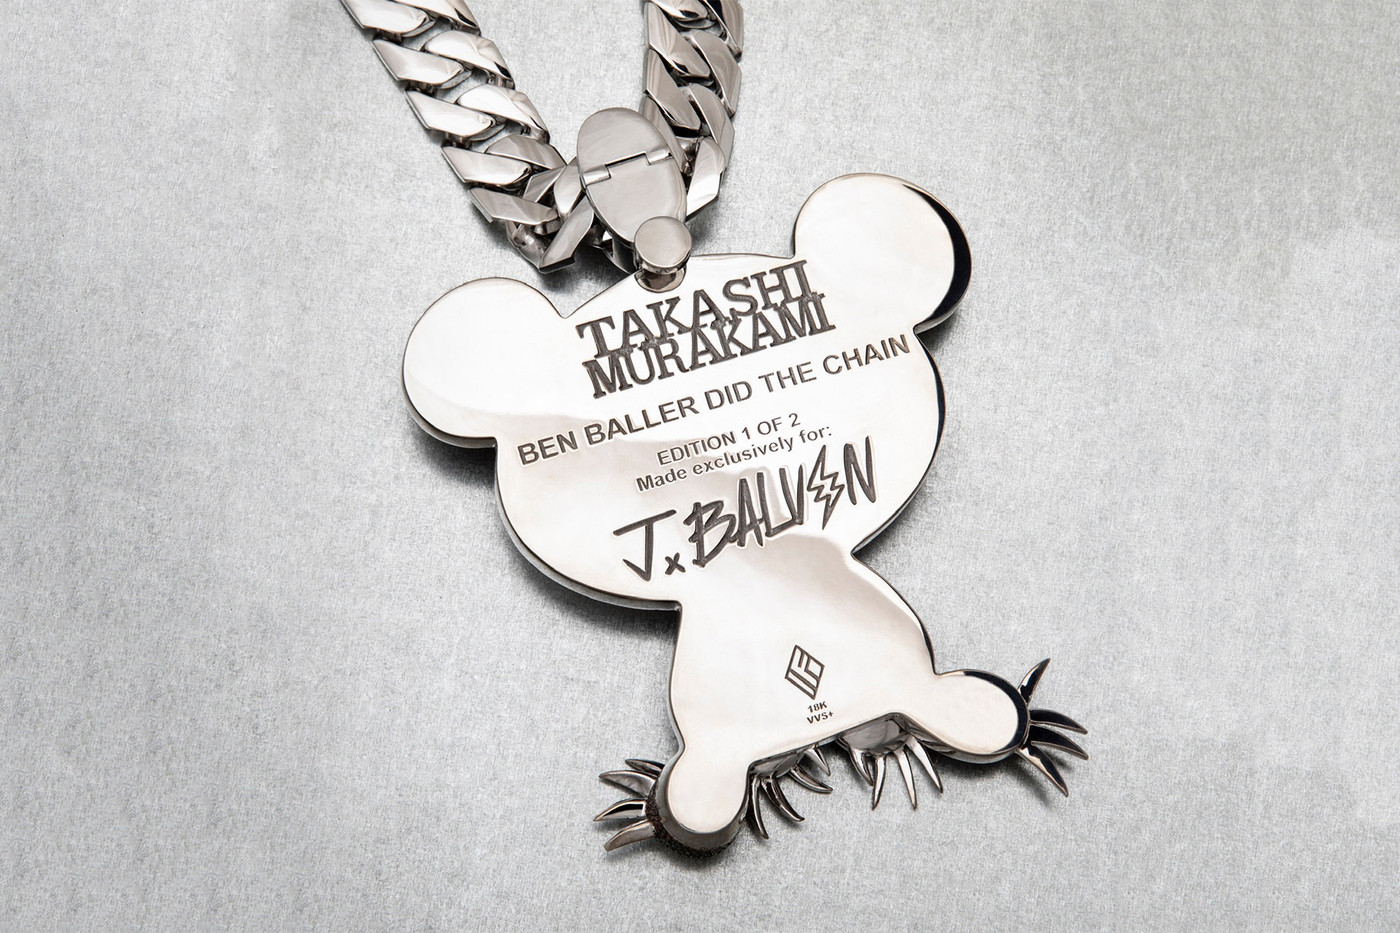 Ben Baller and Takashi Murakami Team Up to Produce Two $560,000 Pieces of Jewellery for J Balvin